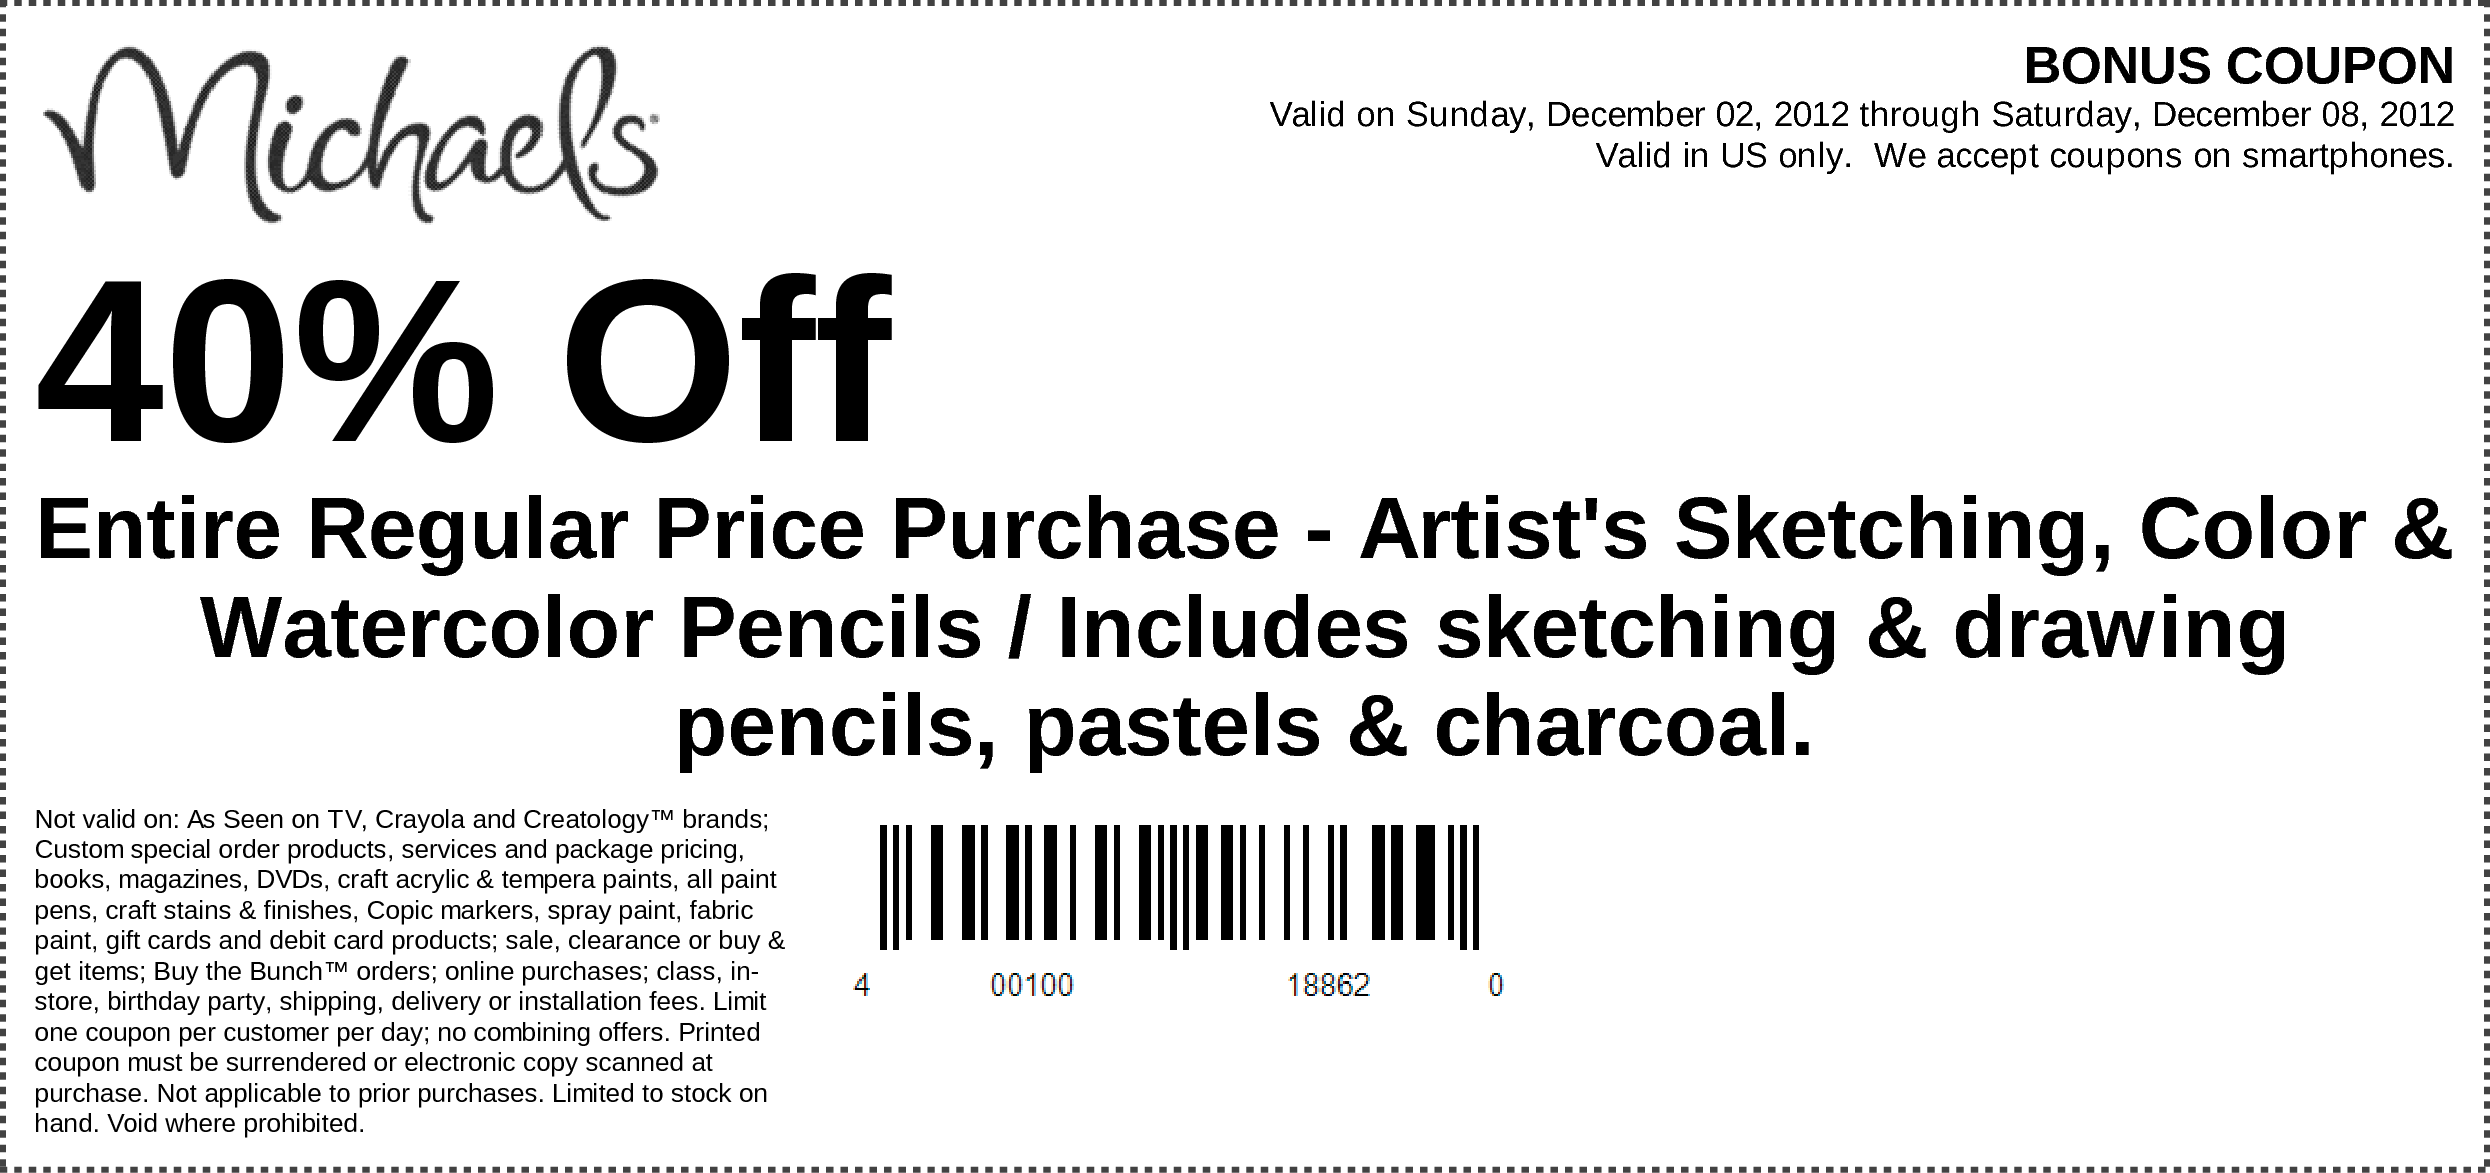 Michaels coupon airbrush